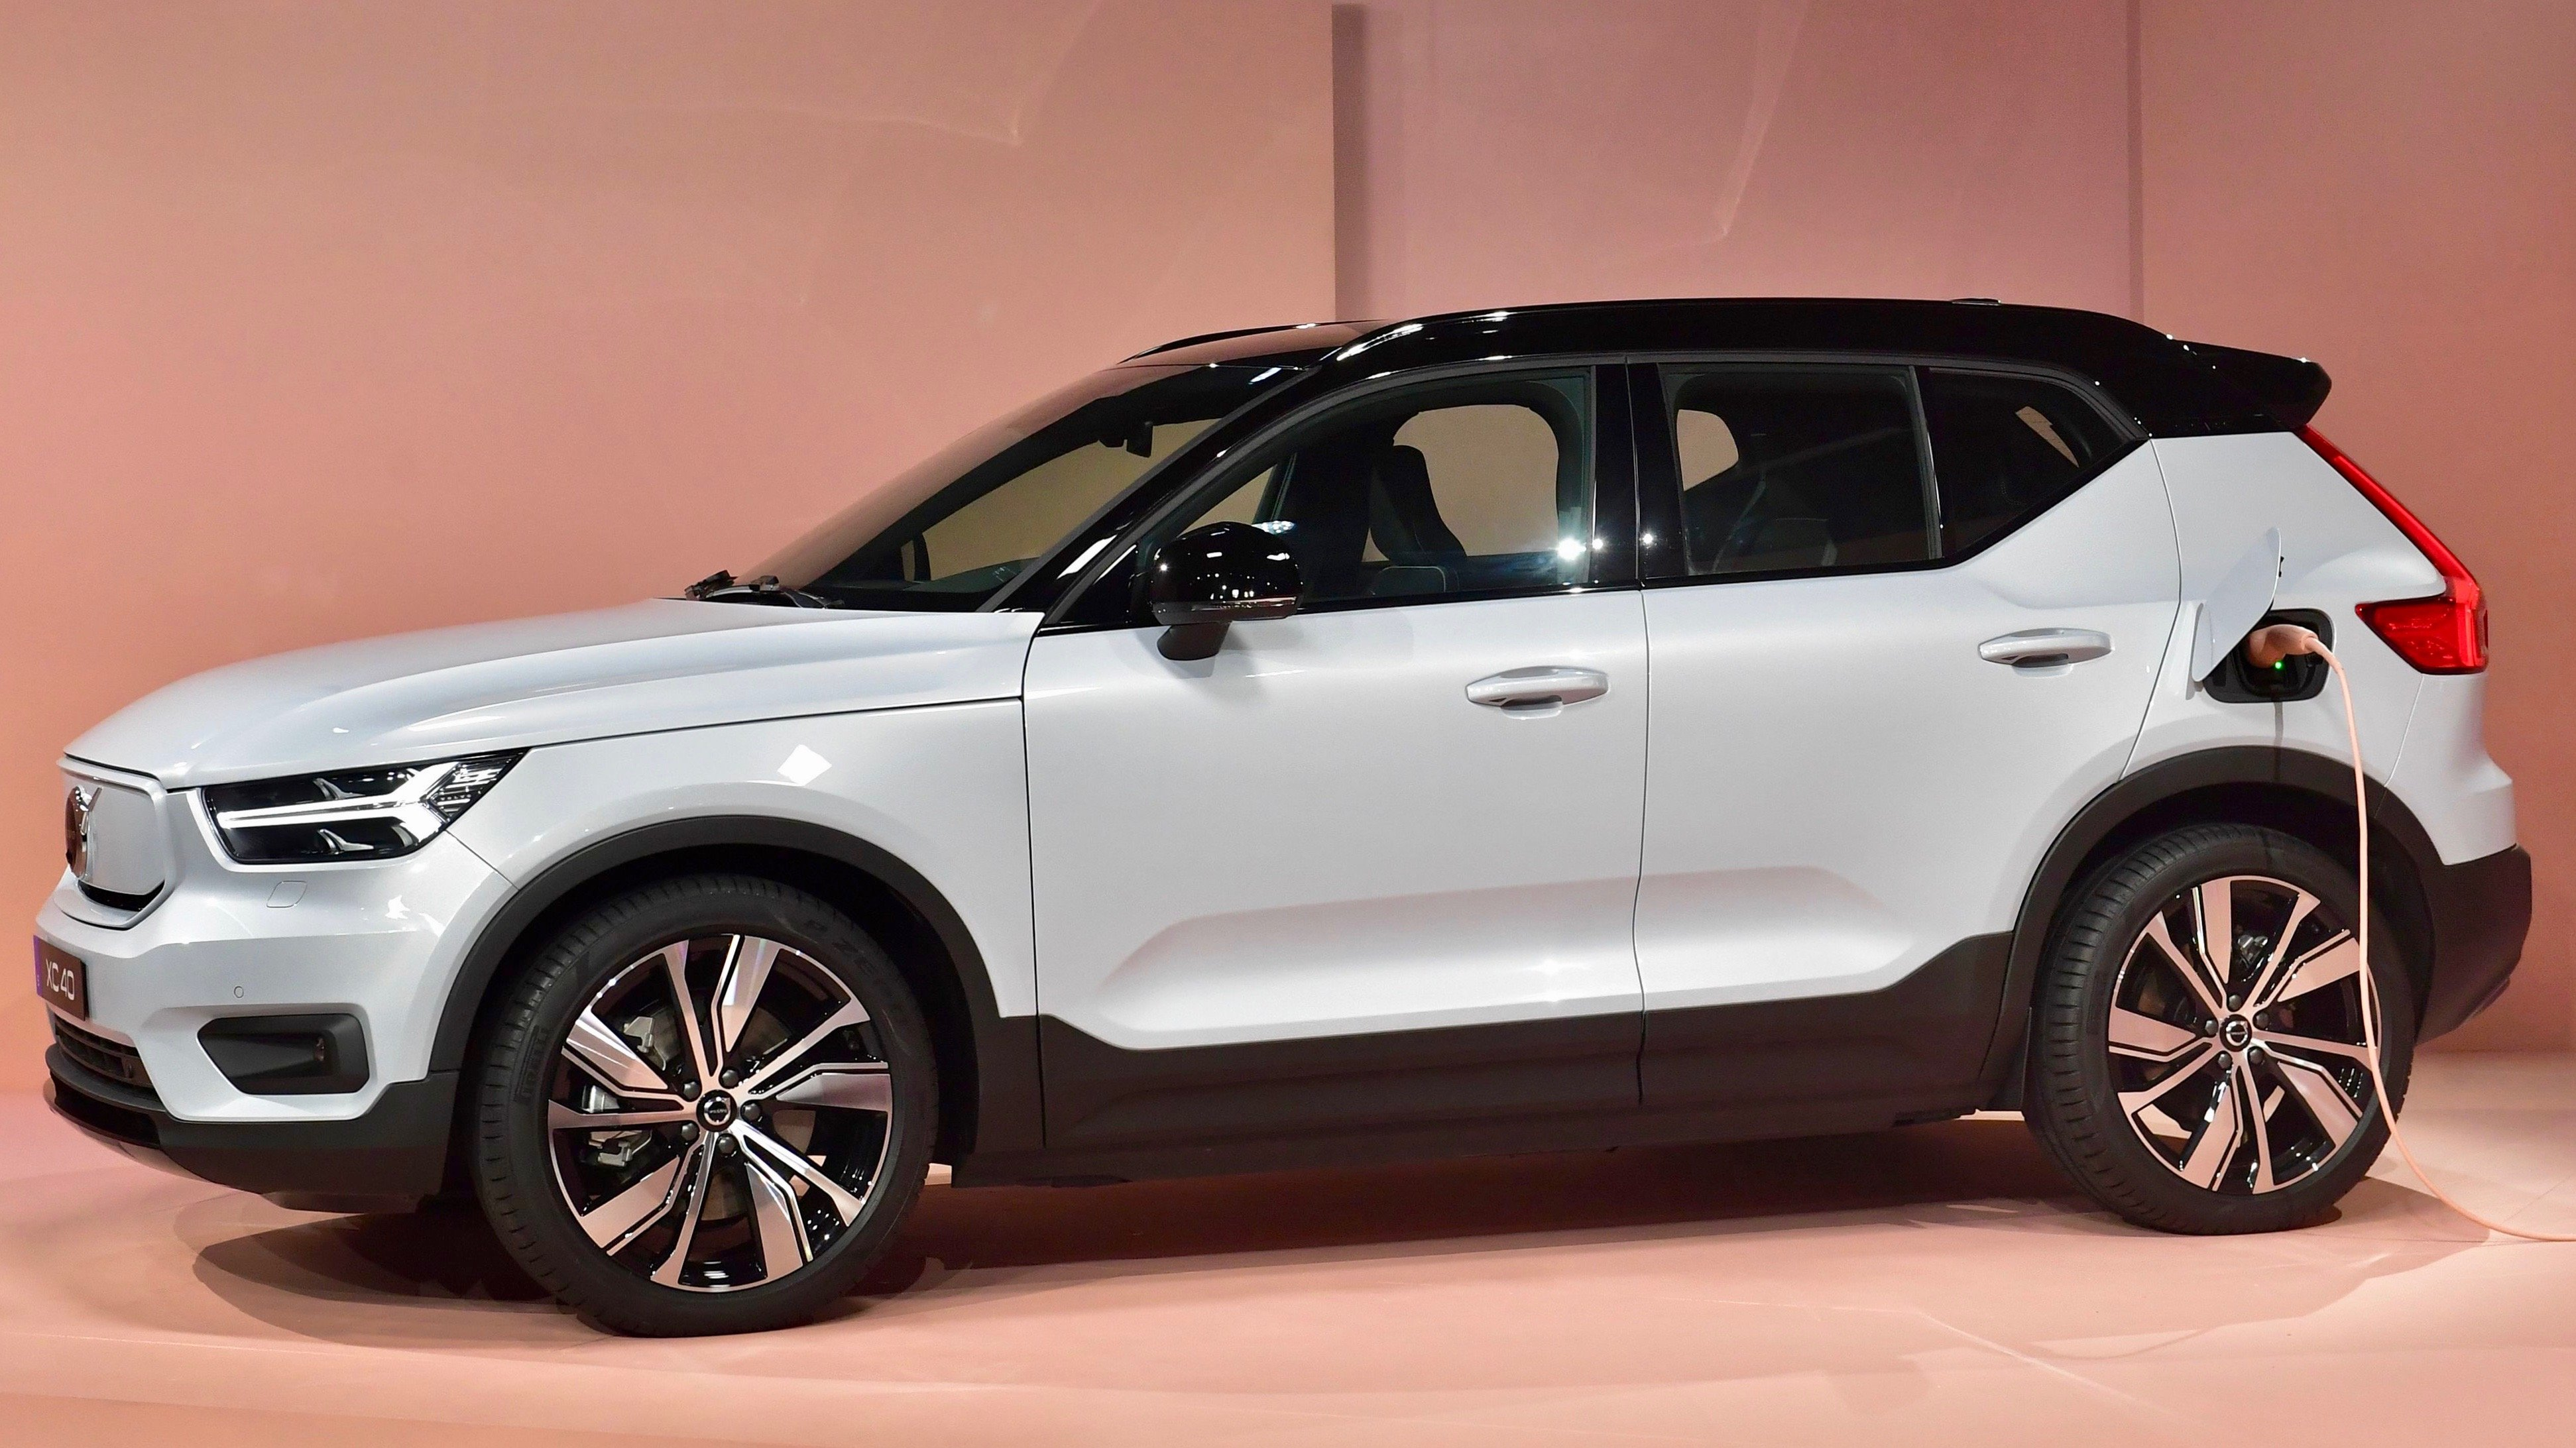 Volvo s First EV Comes With a Plan to Slash Emissions